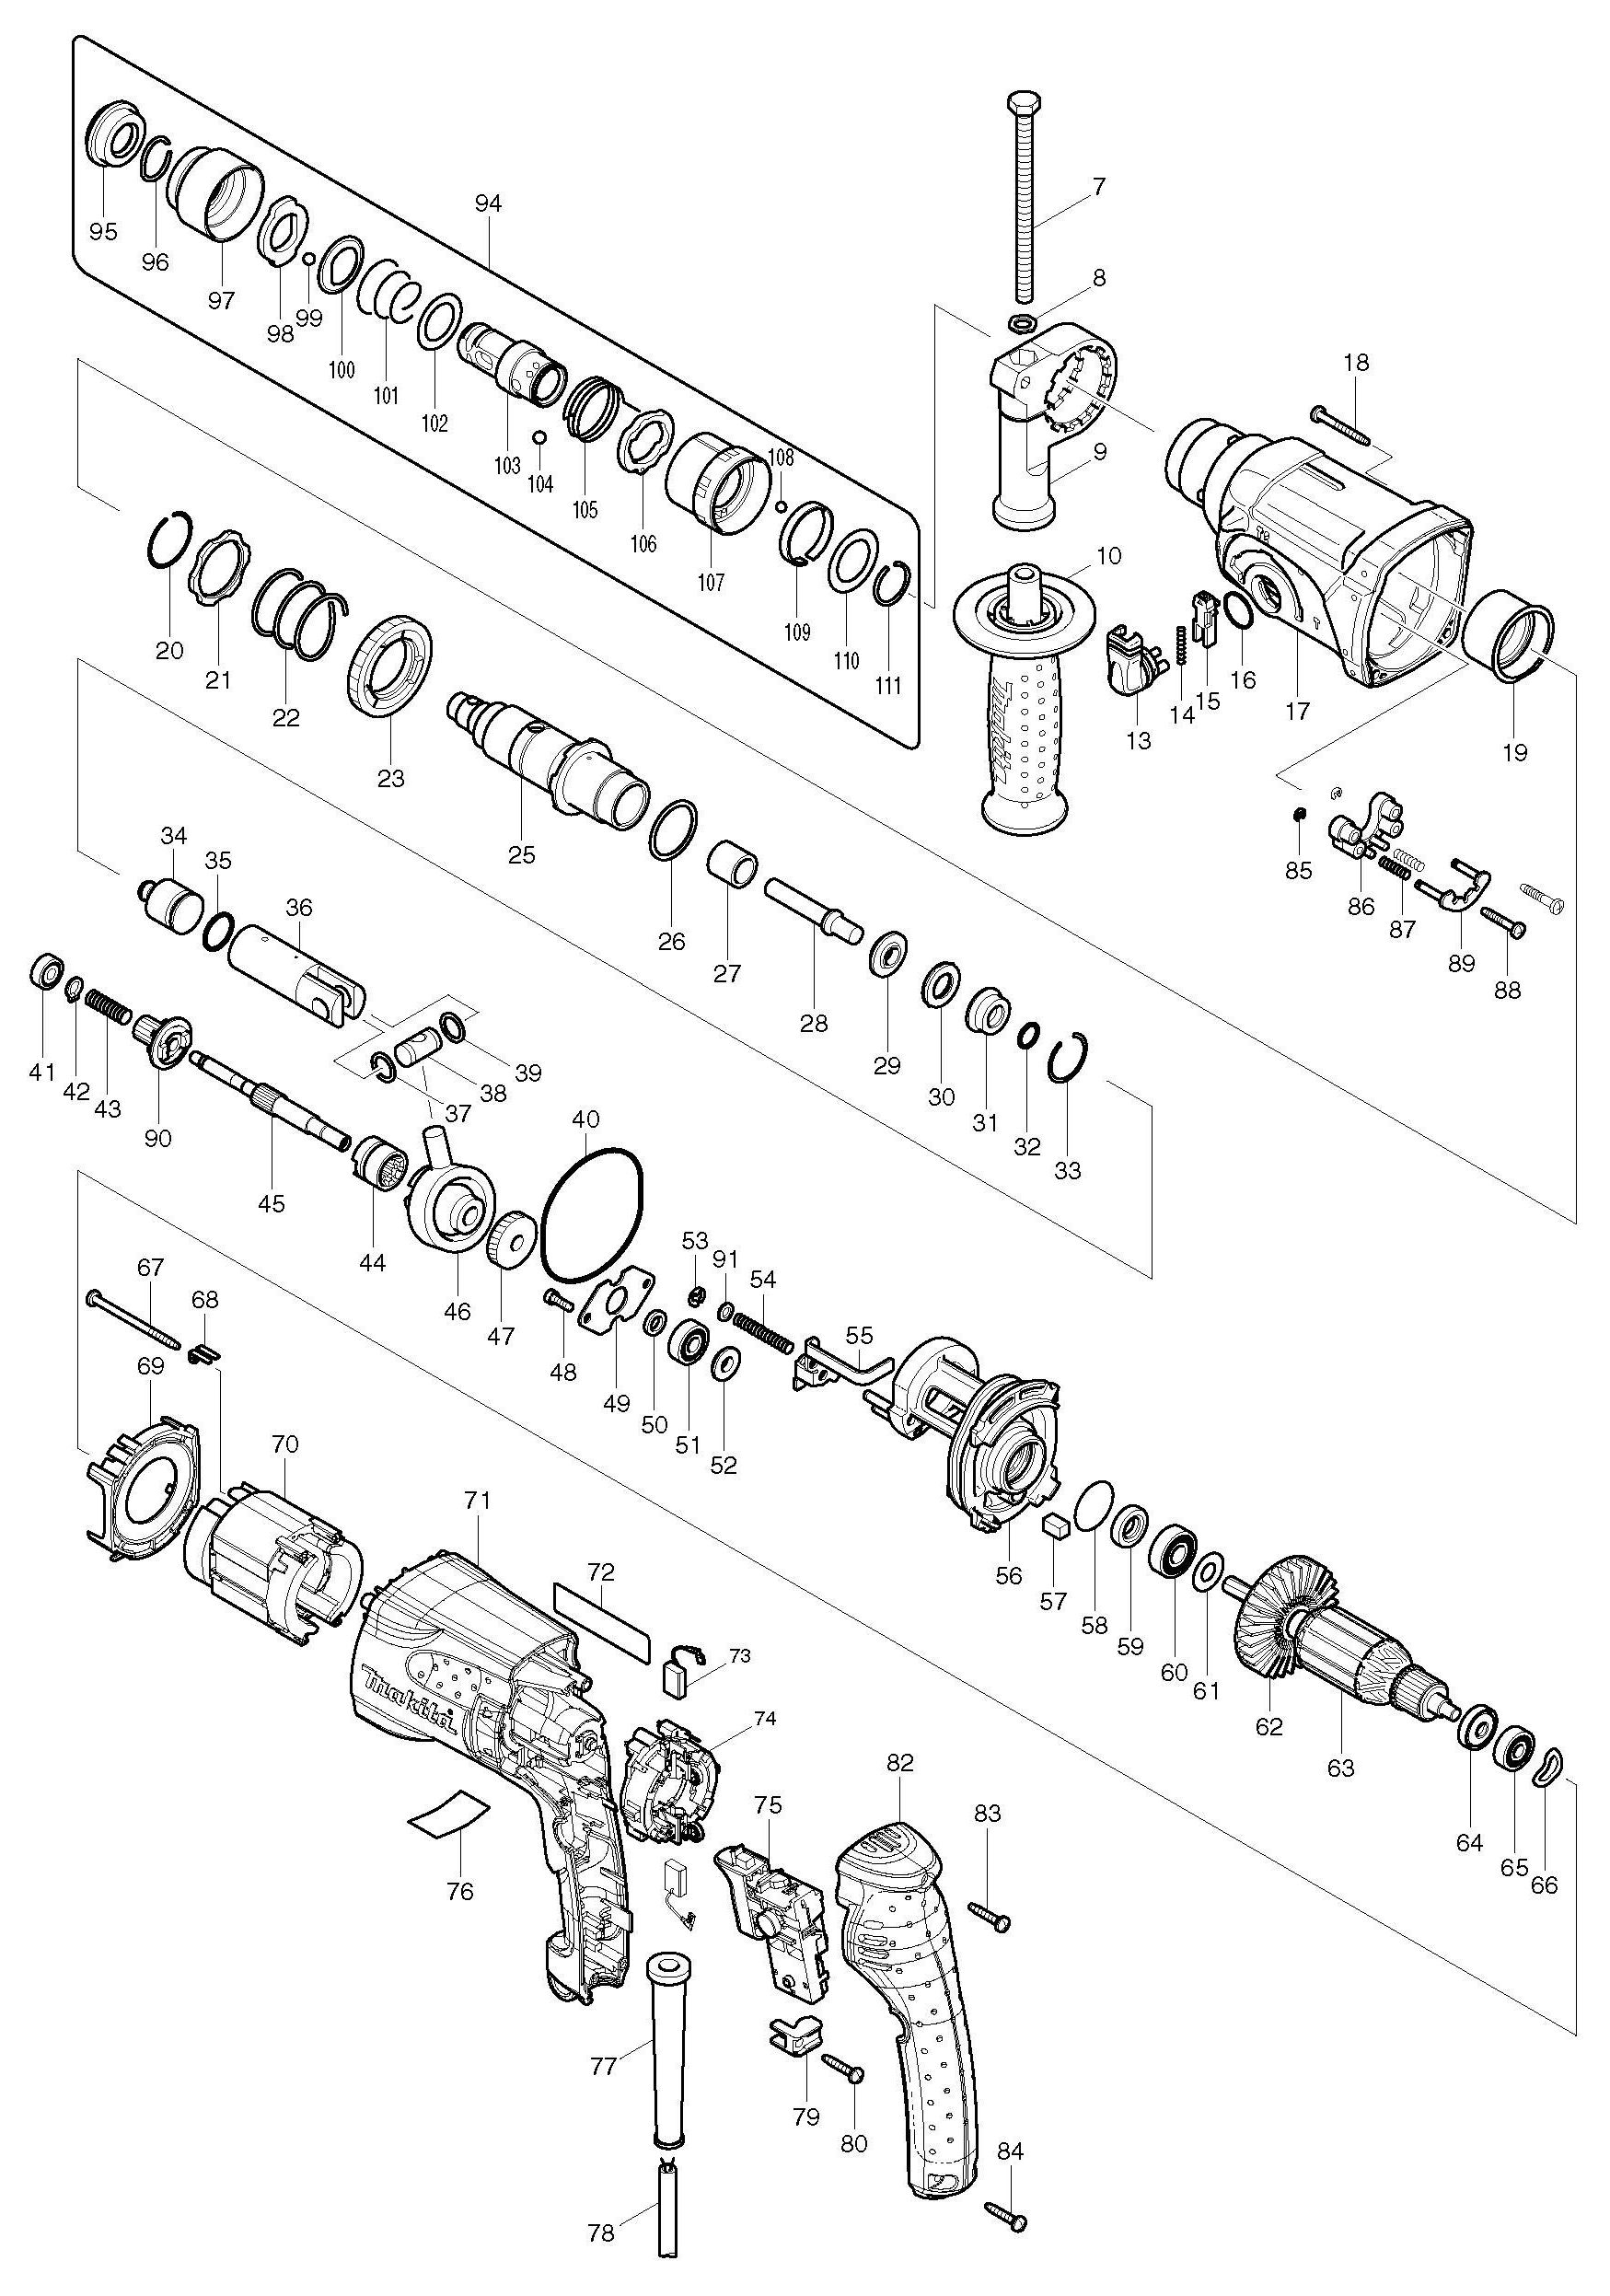 Wiring Diagram For Makita 1 2 Quot Angle Drill. . Wiring Diagram on